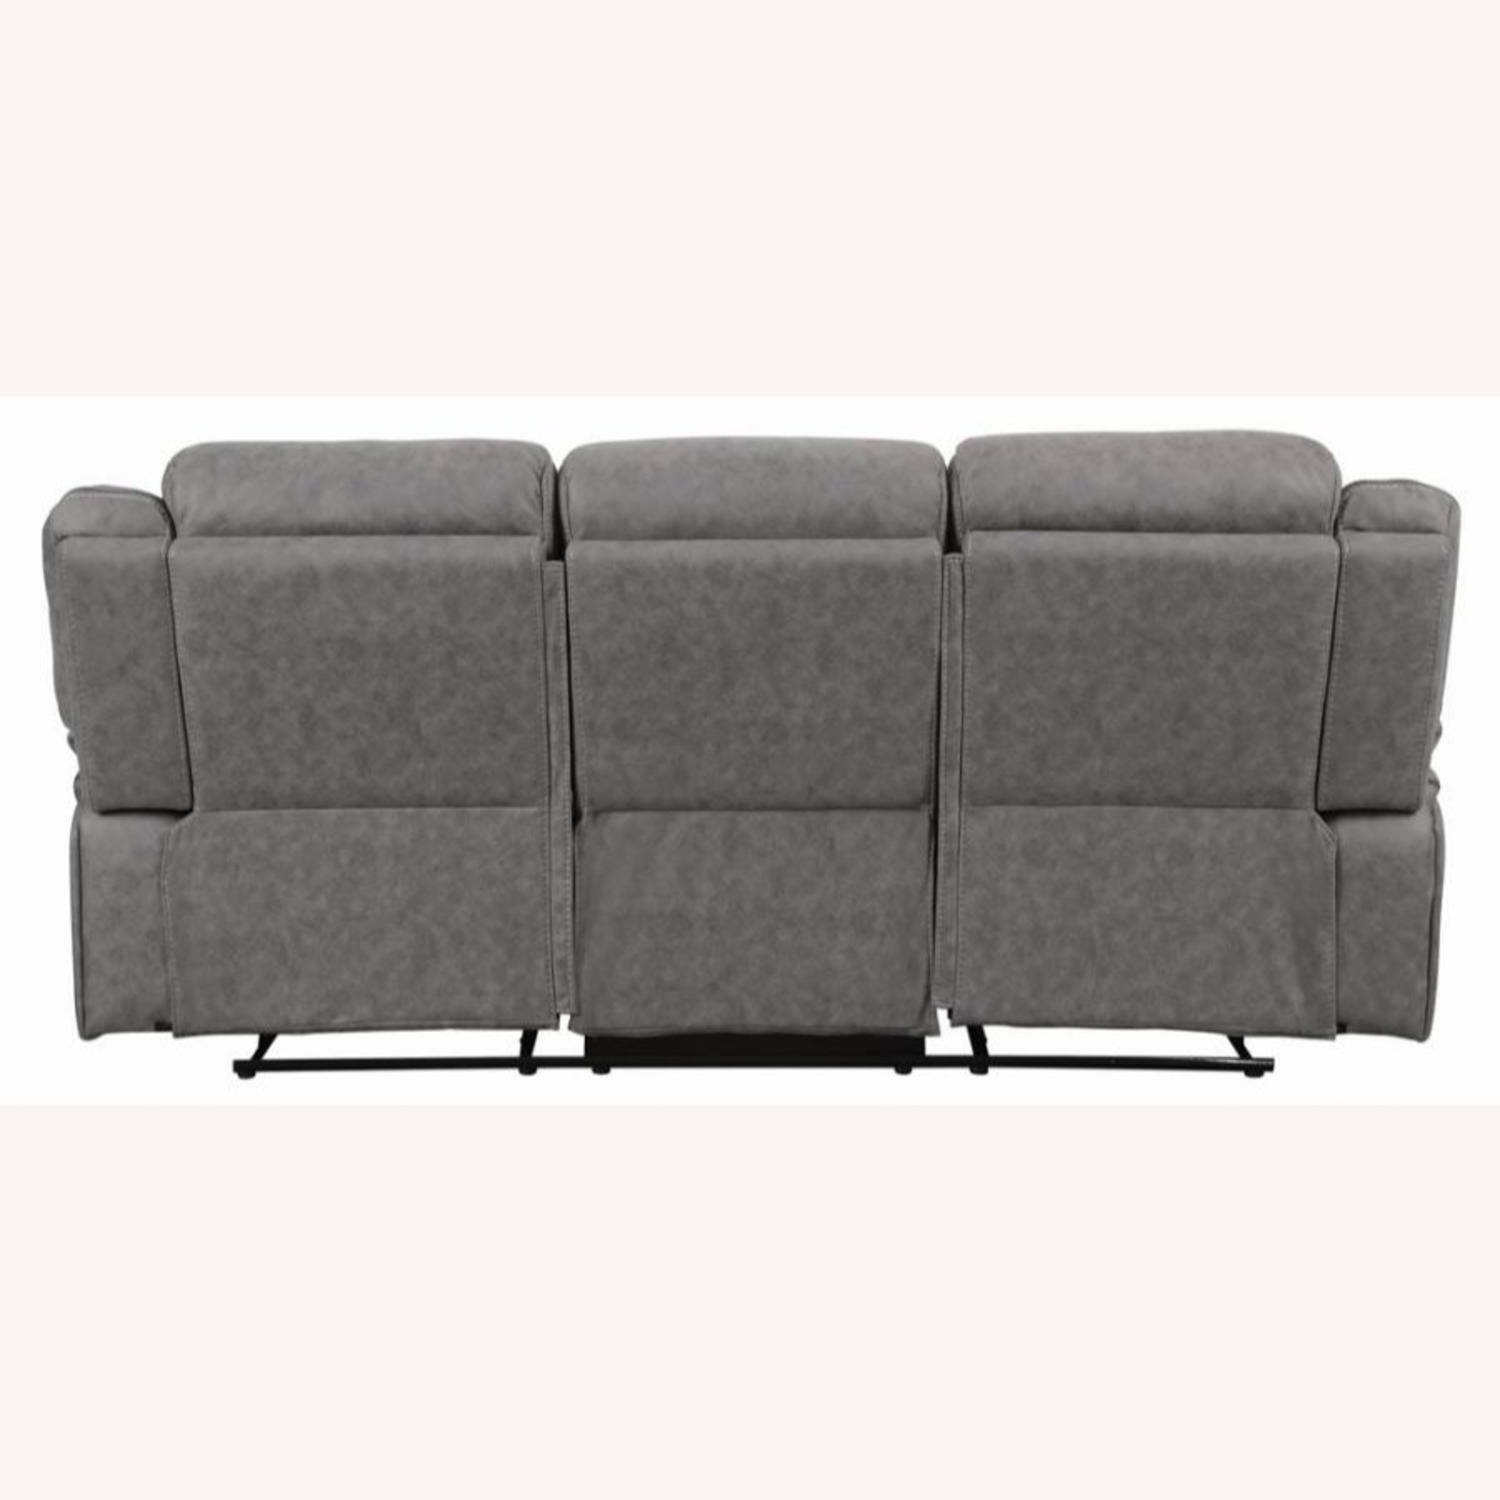 Motion Sofa In Grey Suede W/ Wall Hugger Mechanism - image-3